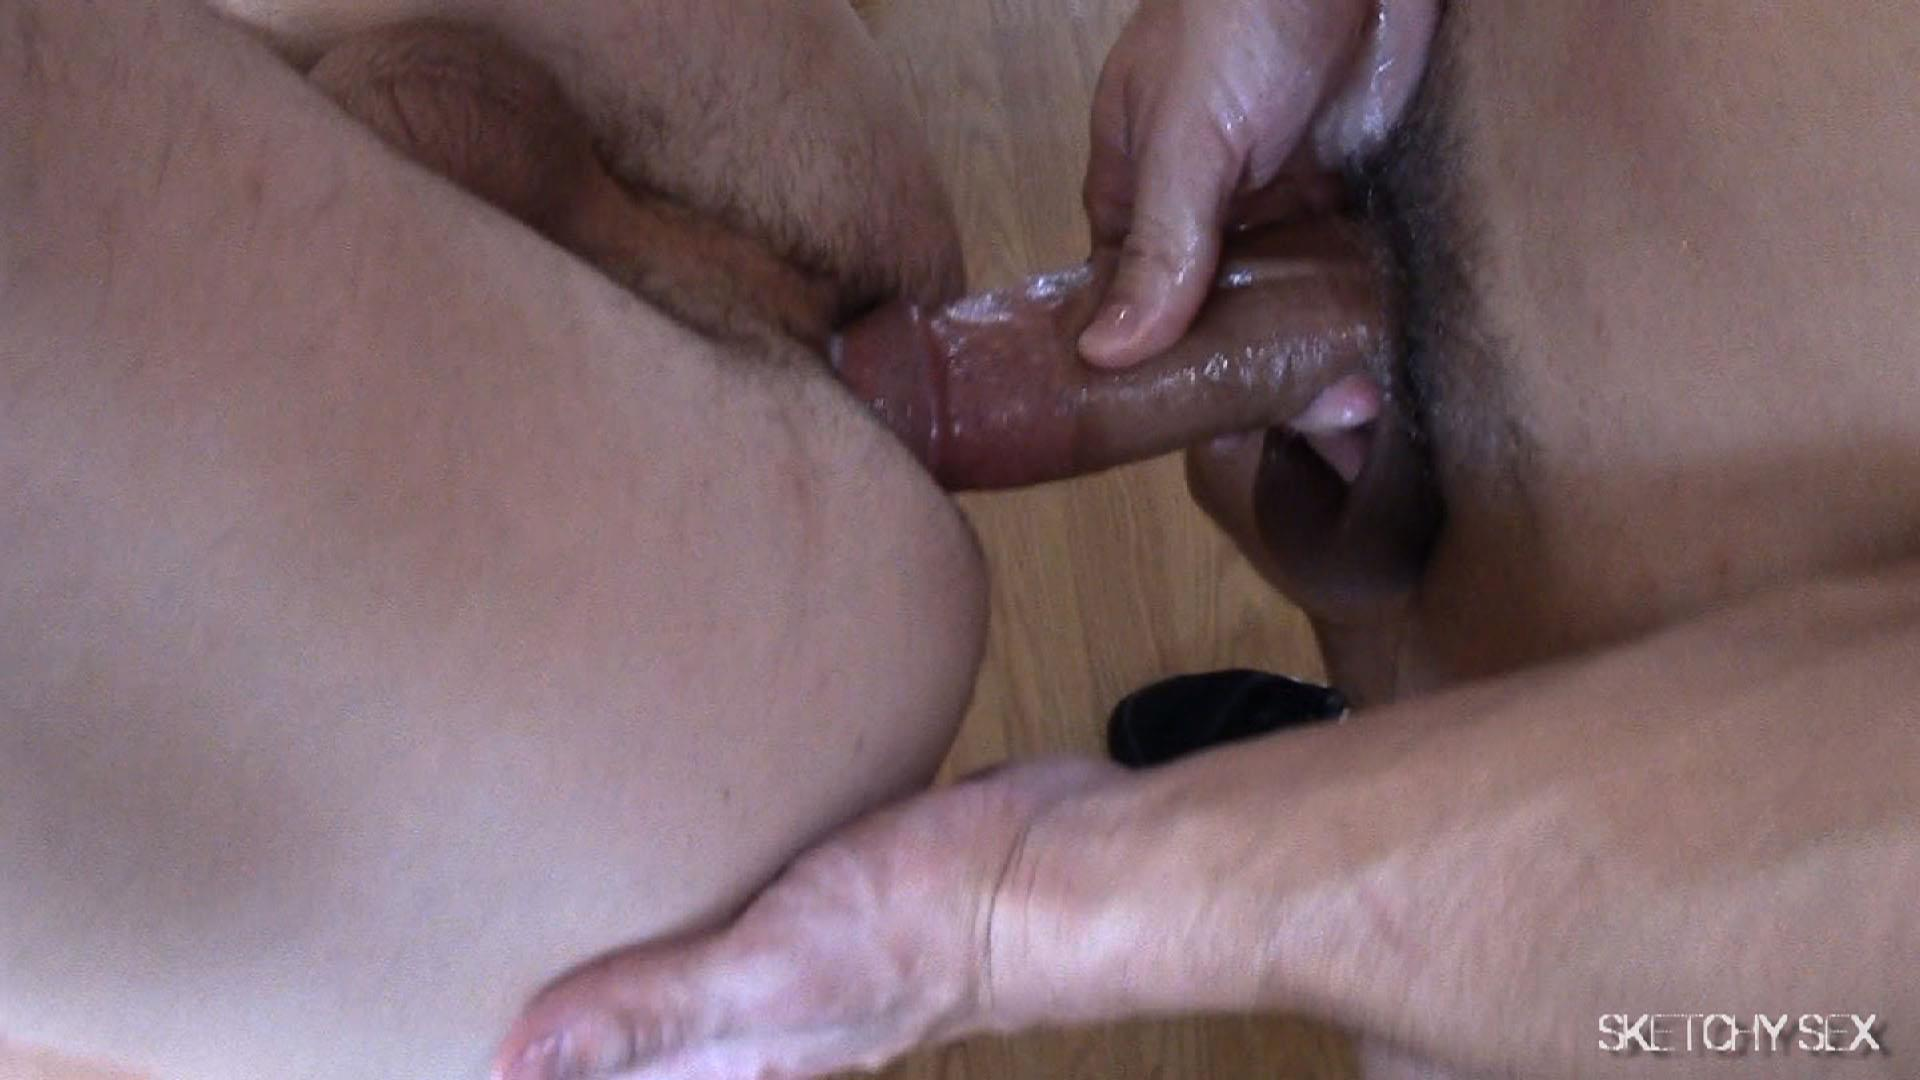 Sketchy-Sex-Nate-Taking-Anonymous-Bareback-Loads-Up-The-Ass-Amateur-Gay-Porn-08 Taking More Than A Dozen Anonymous Bareback Loads Up The Ass